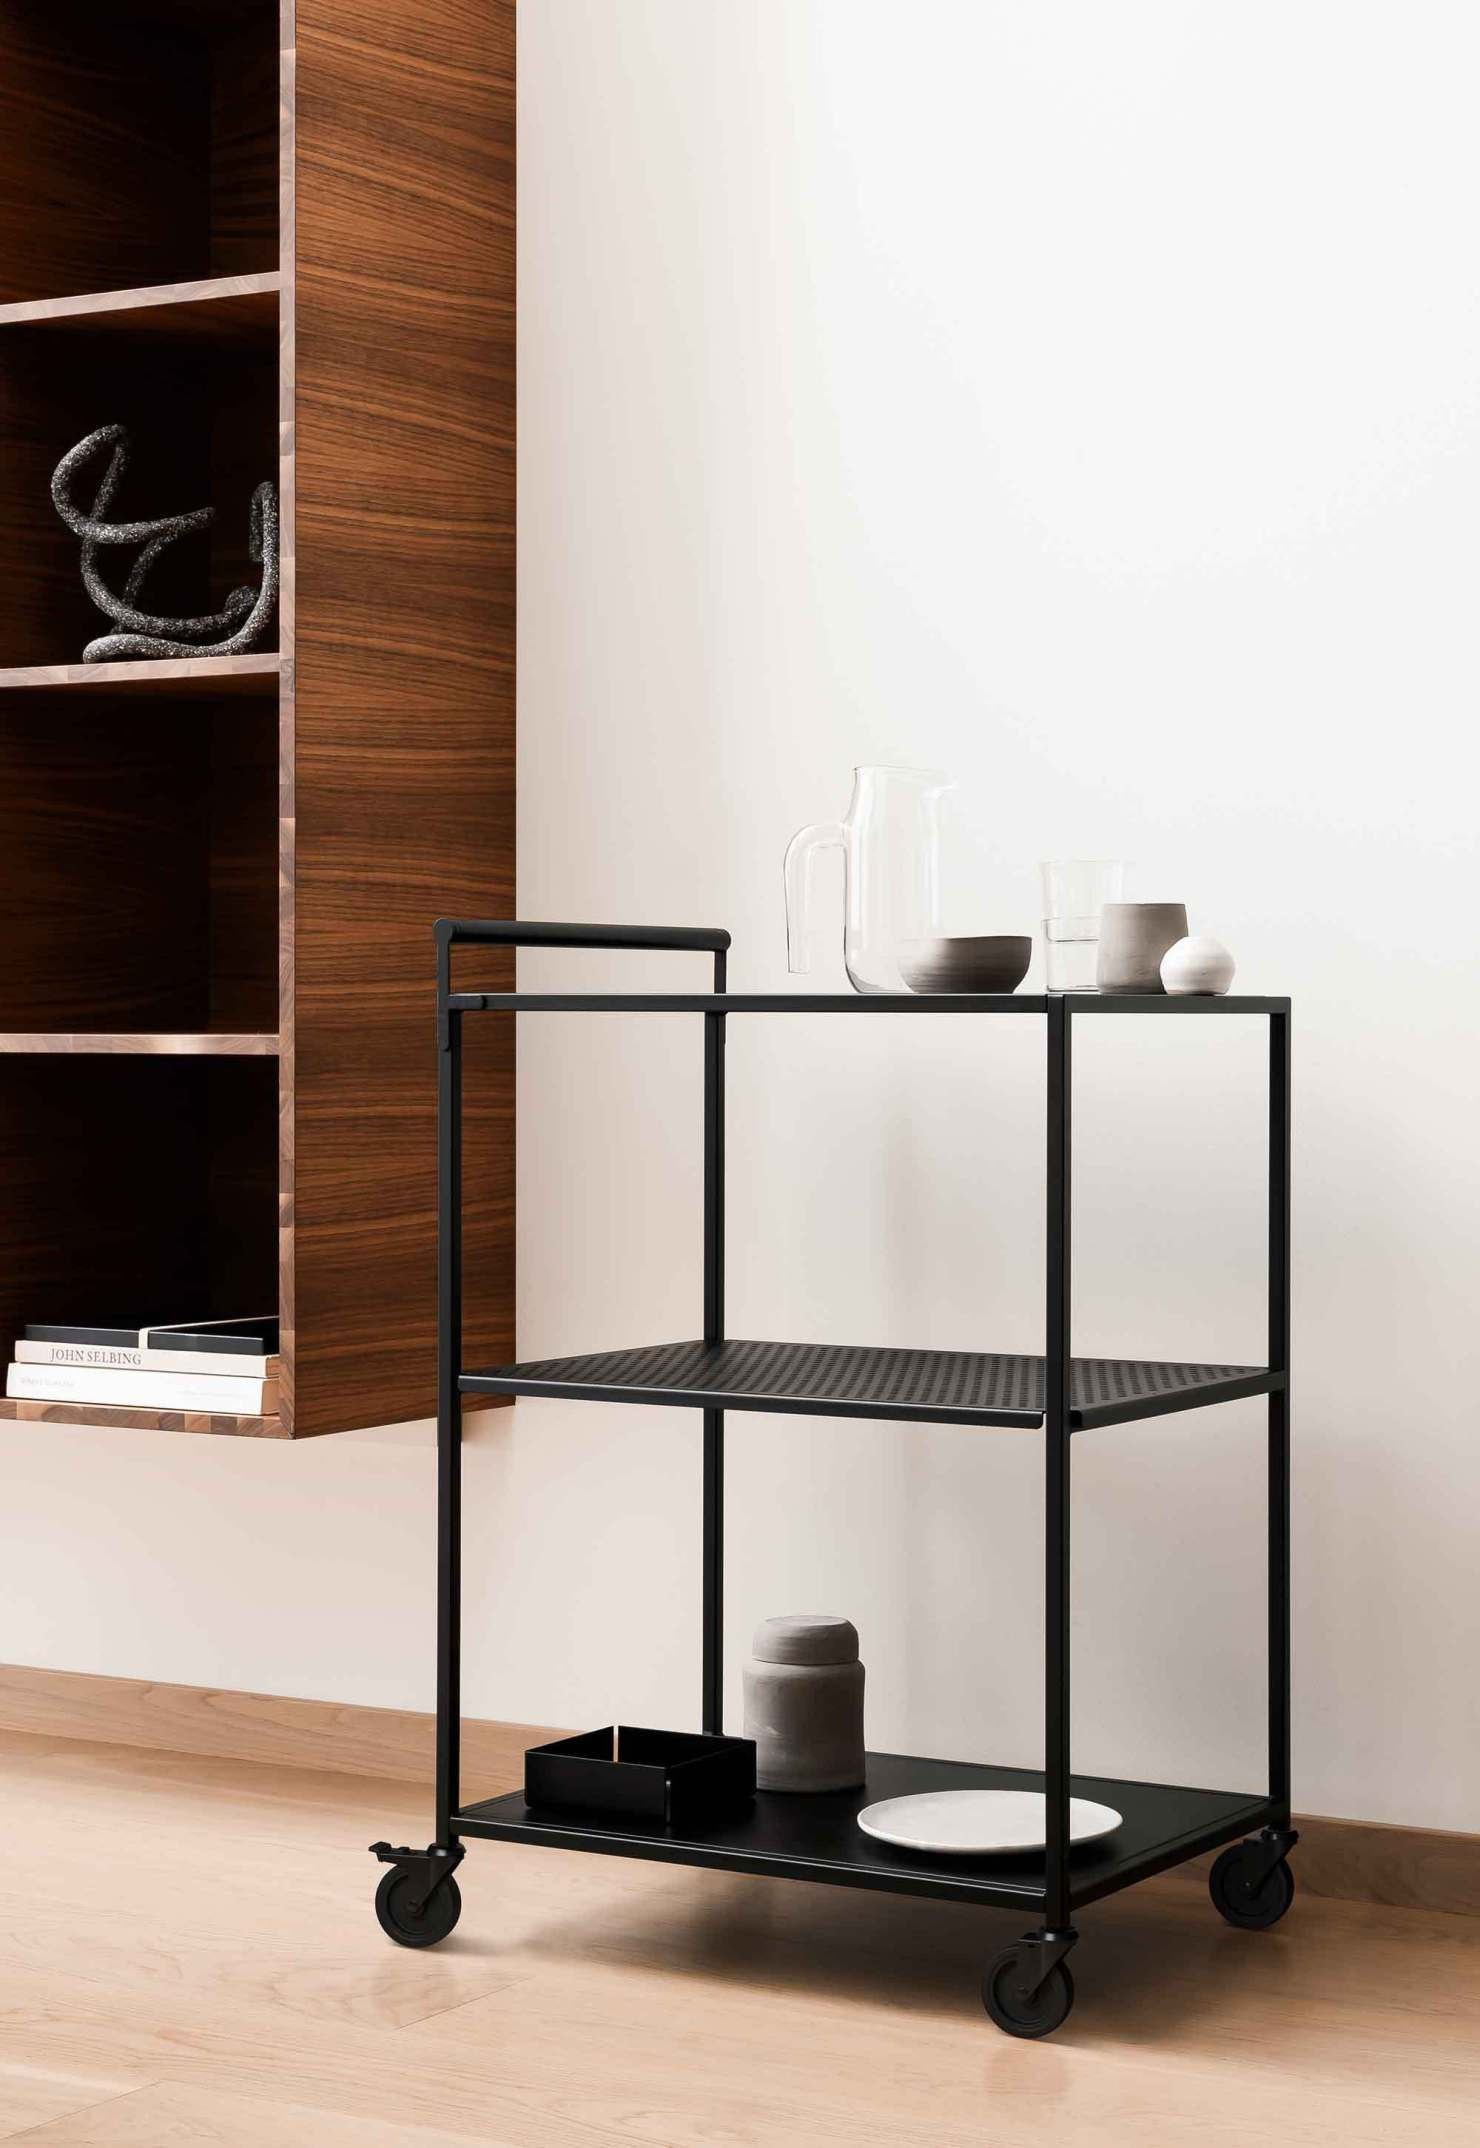 12 Of The Best Minimalist Bar Carts Serving Trolleys Serving Trolley Room Interior Design Design